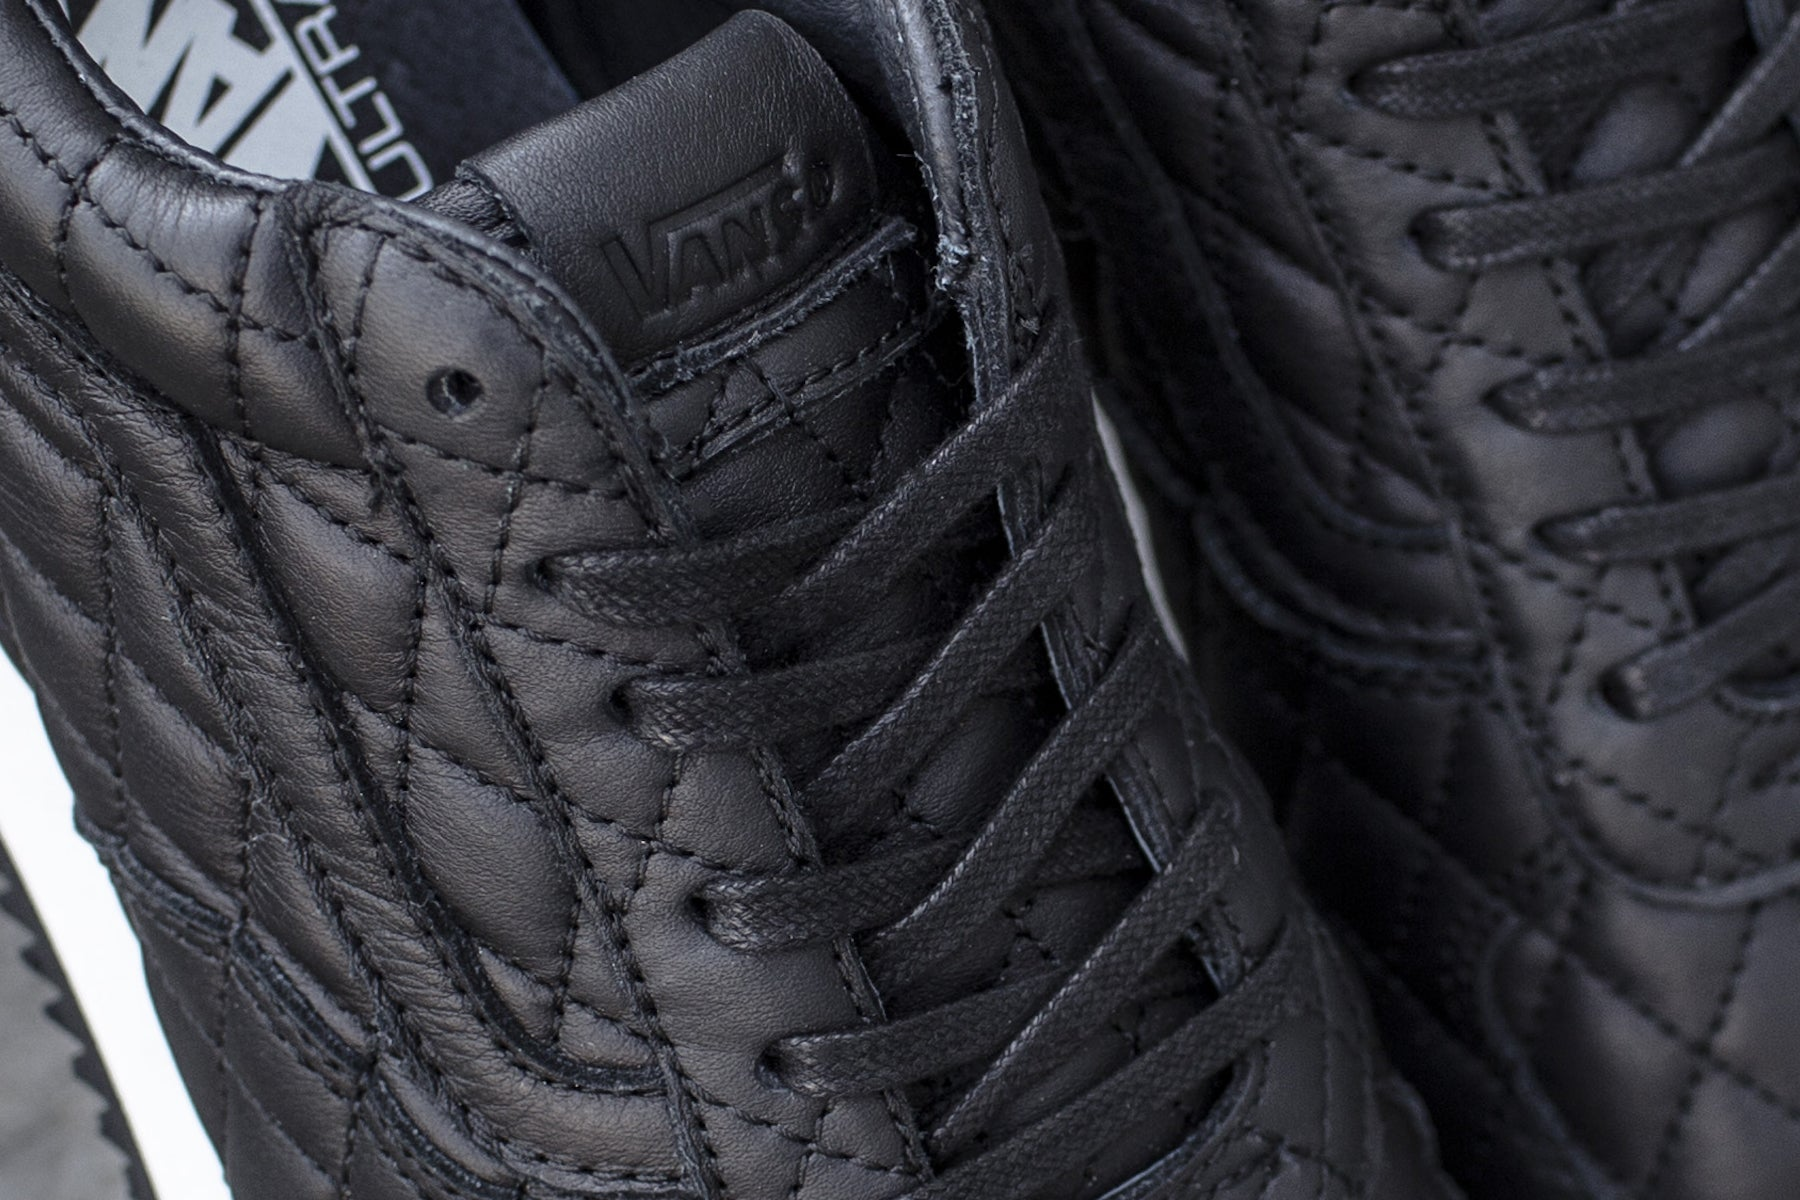 4b4aafb7bad1c7 The Blends x Vans Vault Quilted Leather Runner will be available this  Saturday